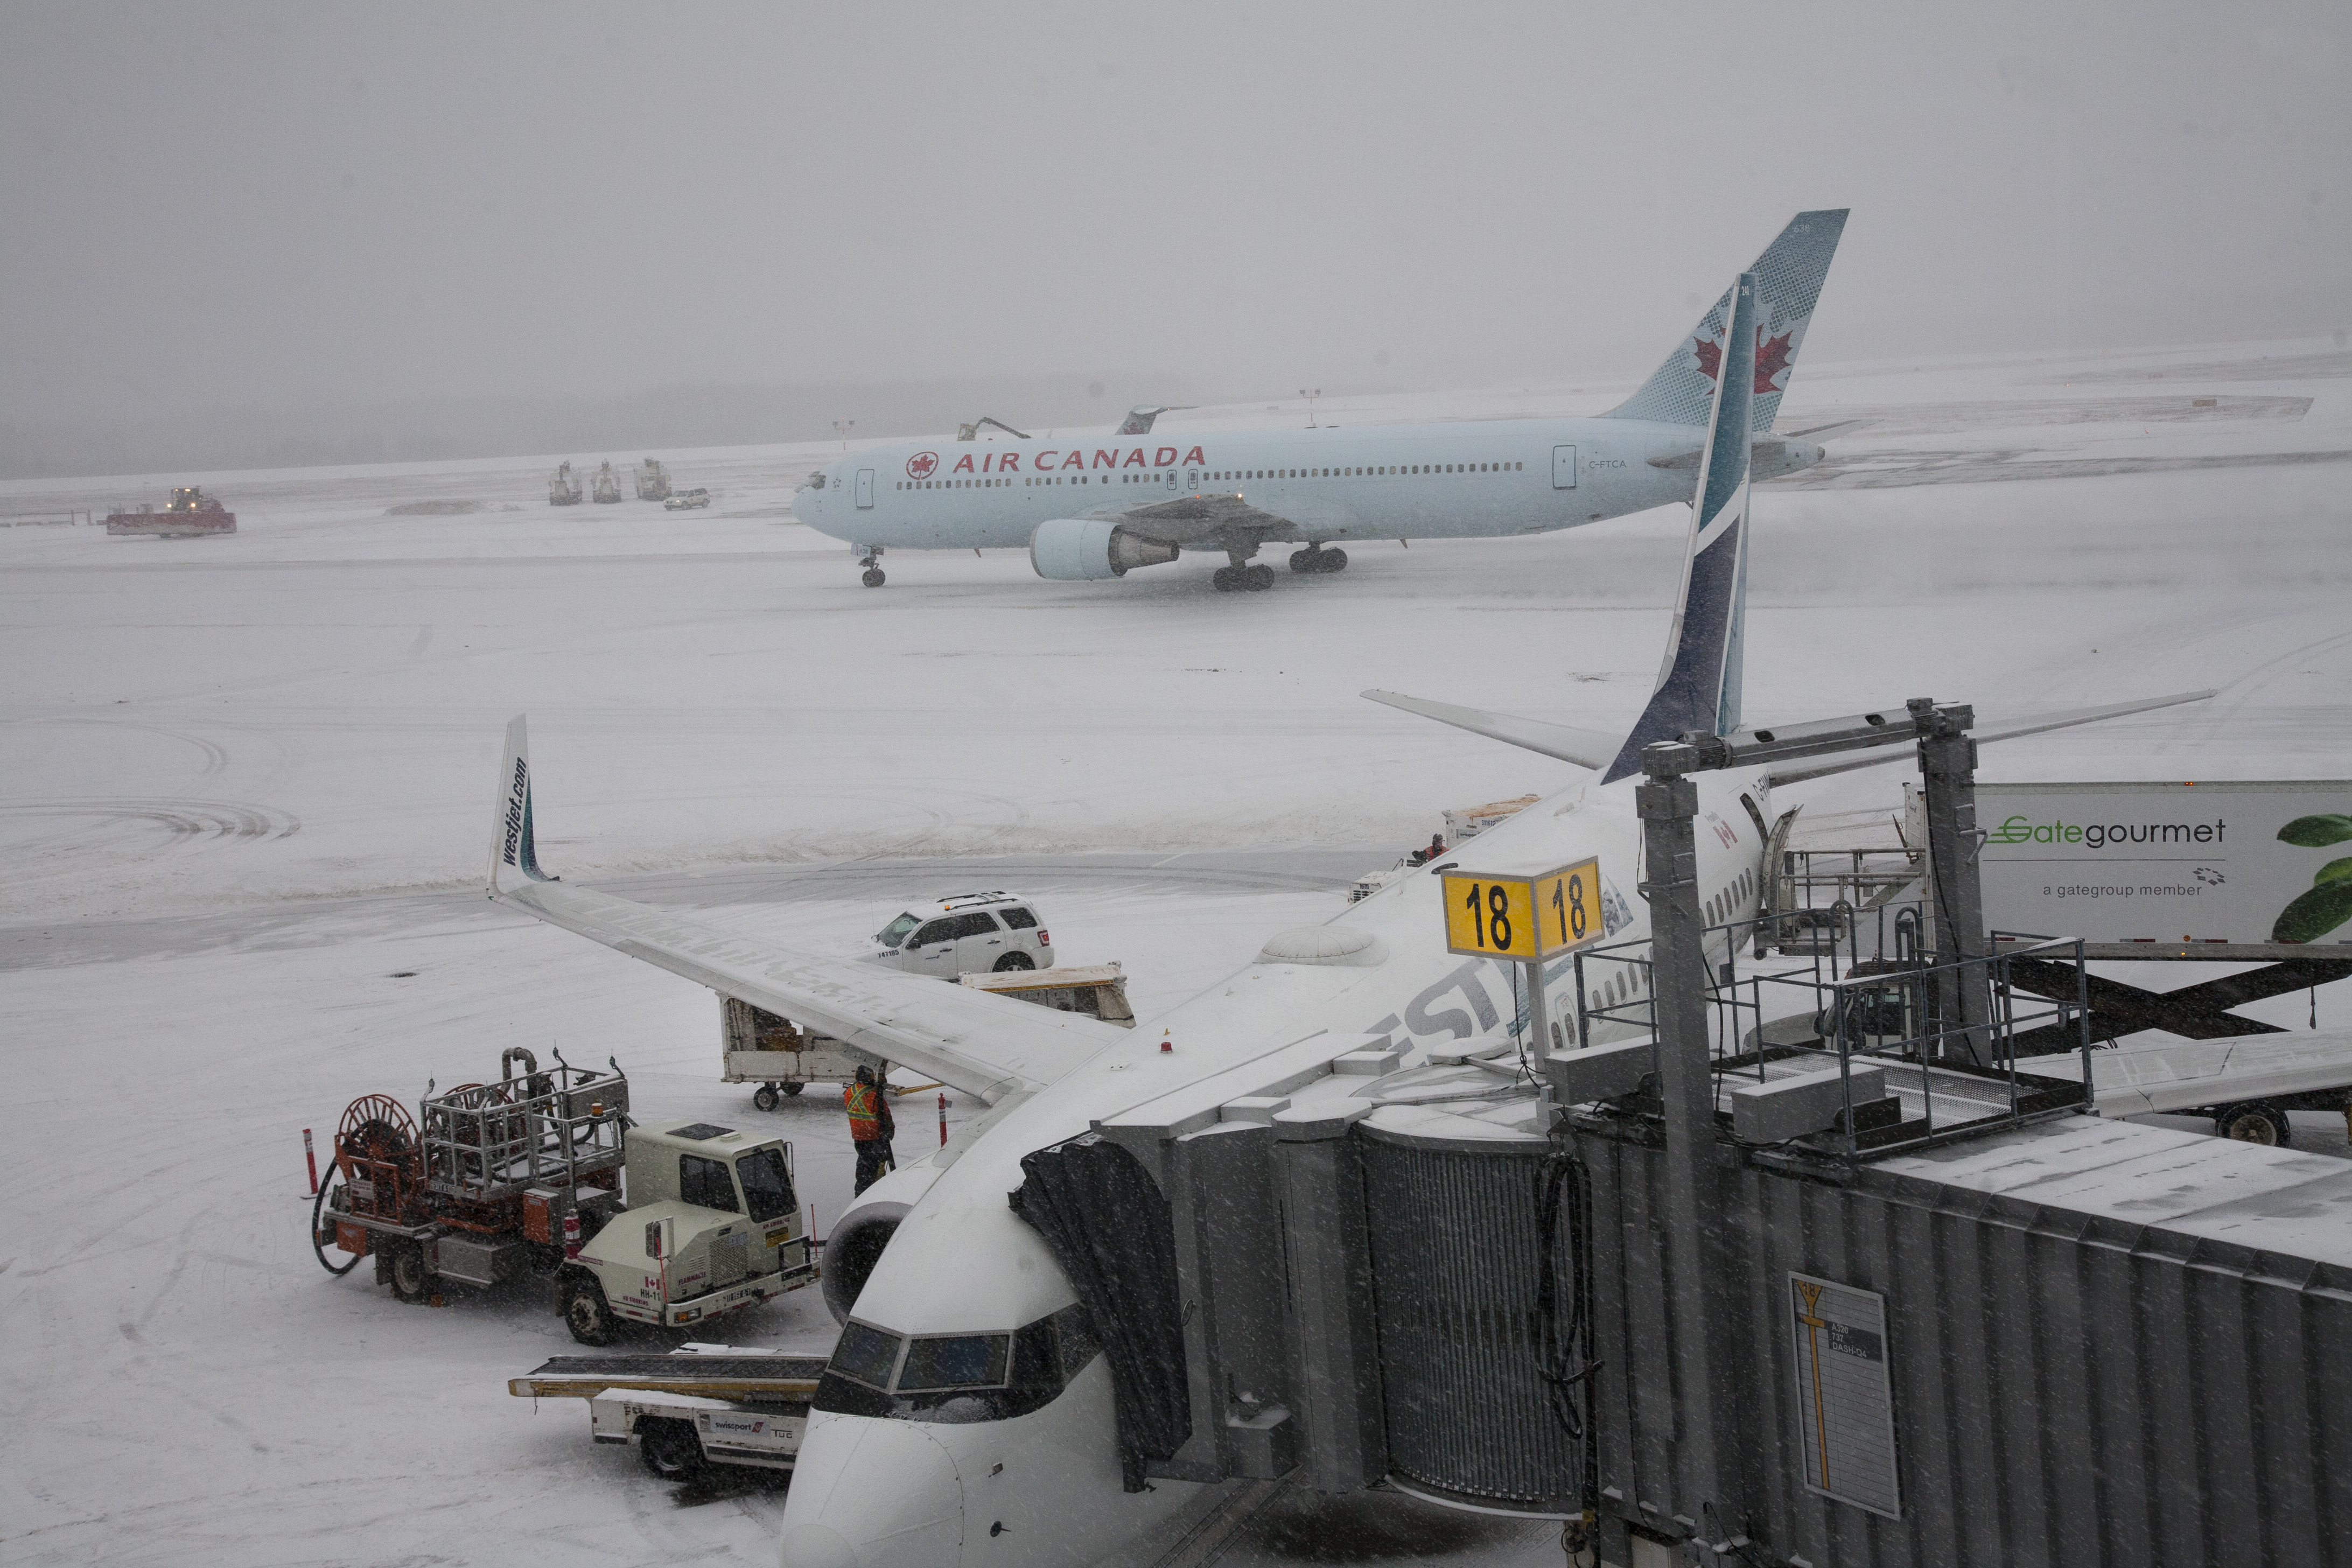 Crews at Halifax's Stanfield Airport ready a Westjet plane for it's next flight as an Air Canada plane makes it way to the gate on a snowy day. Friday January 6, 2017 (Mike Harvey)